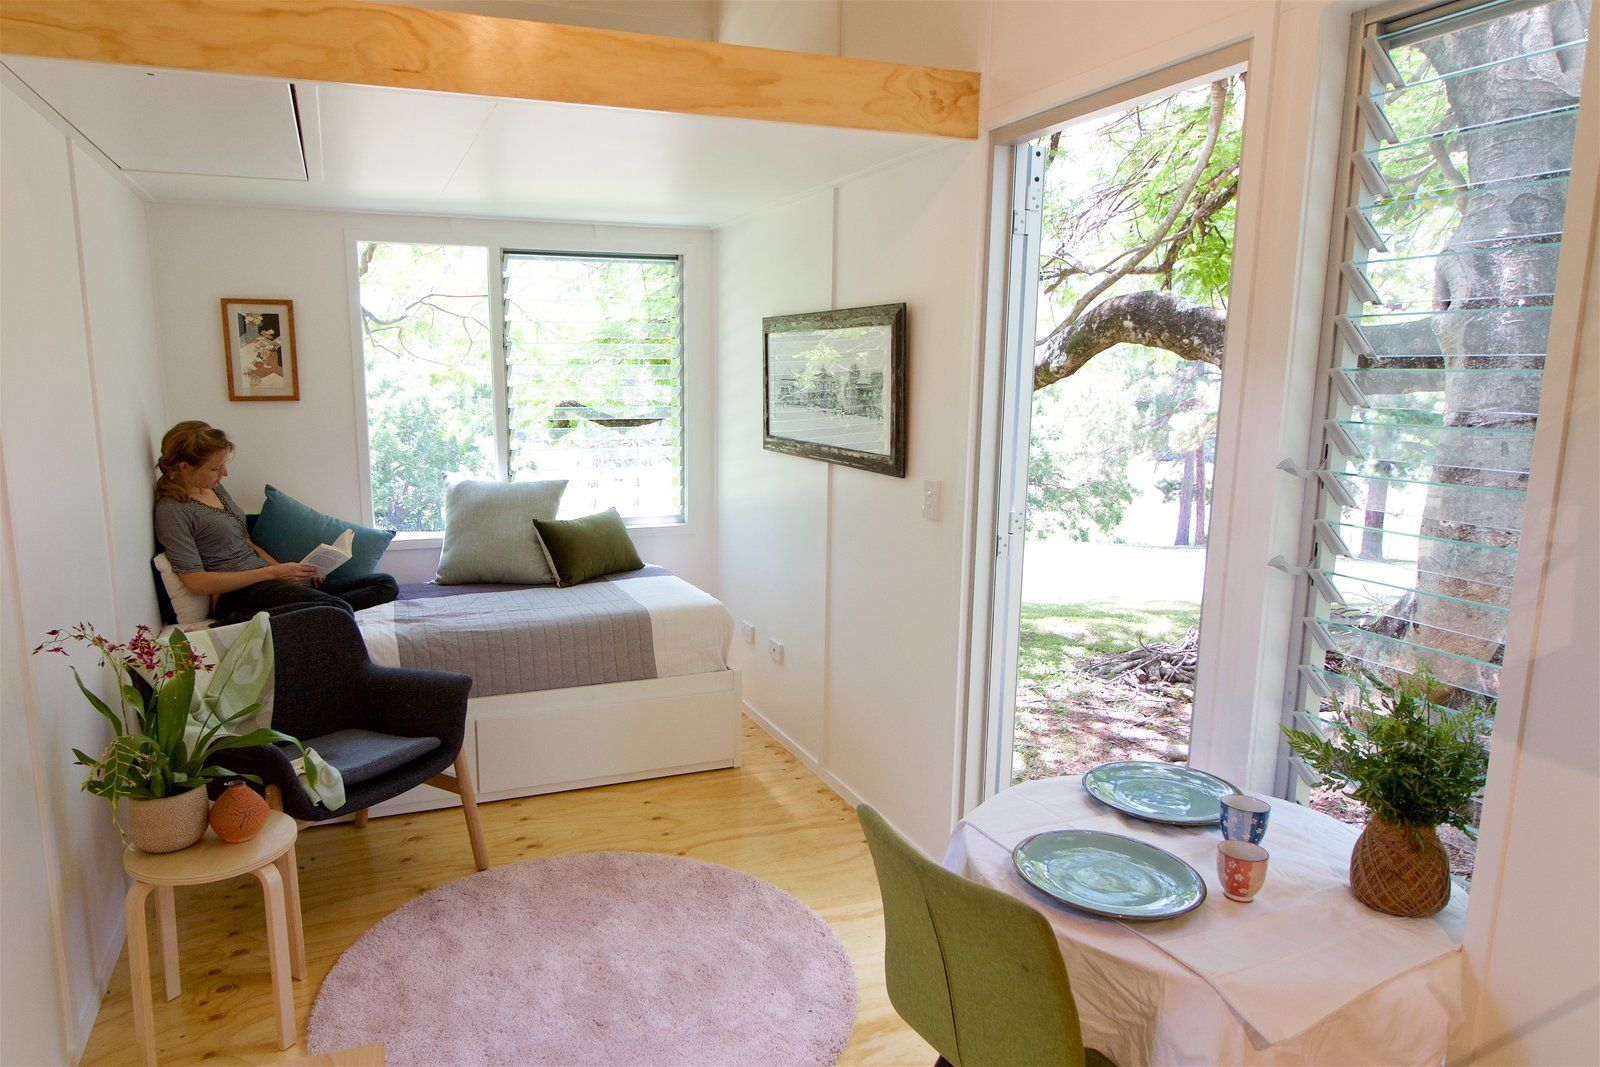 Photo 2 Of 10 In This Midcentury Inspired Tiny House